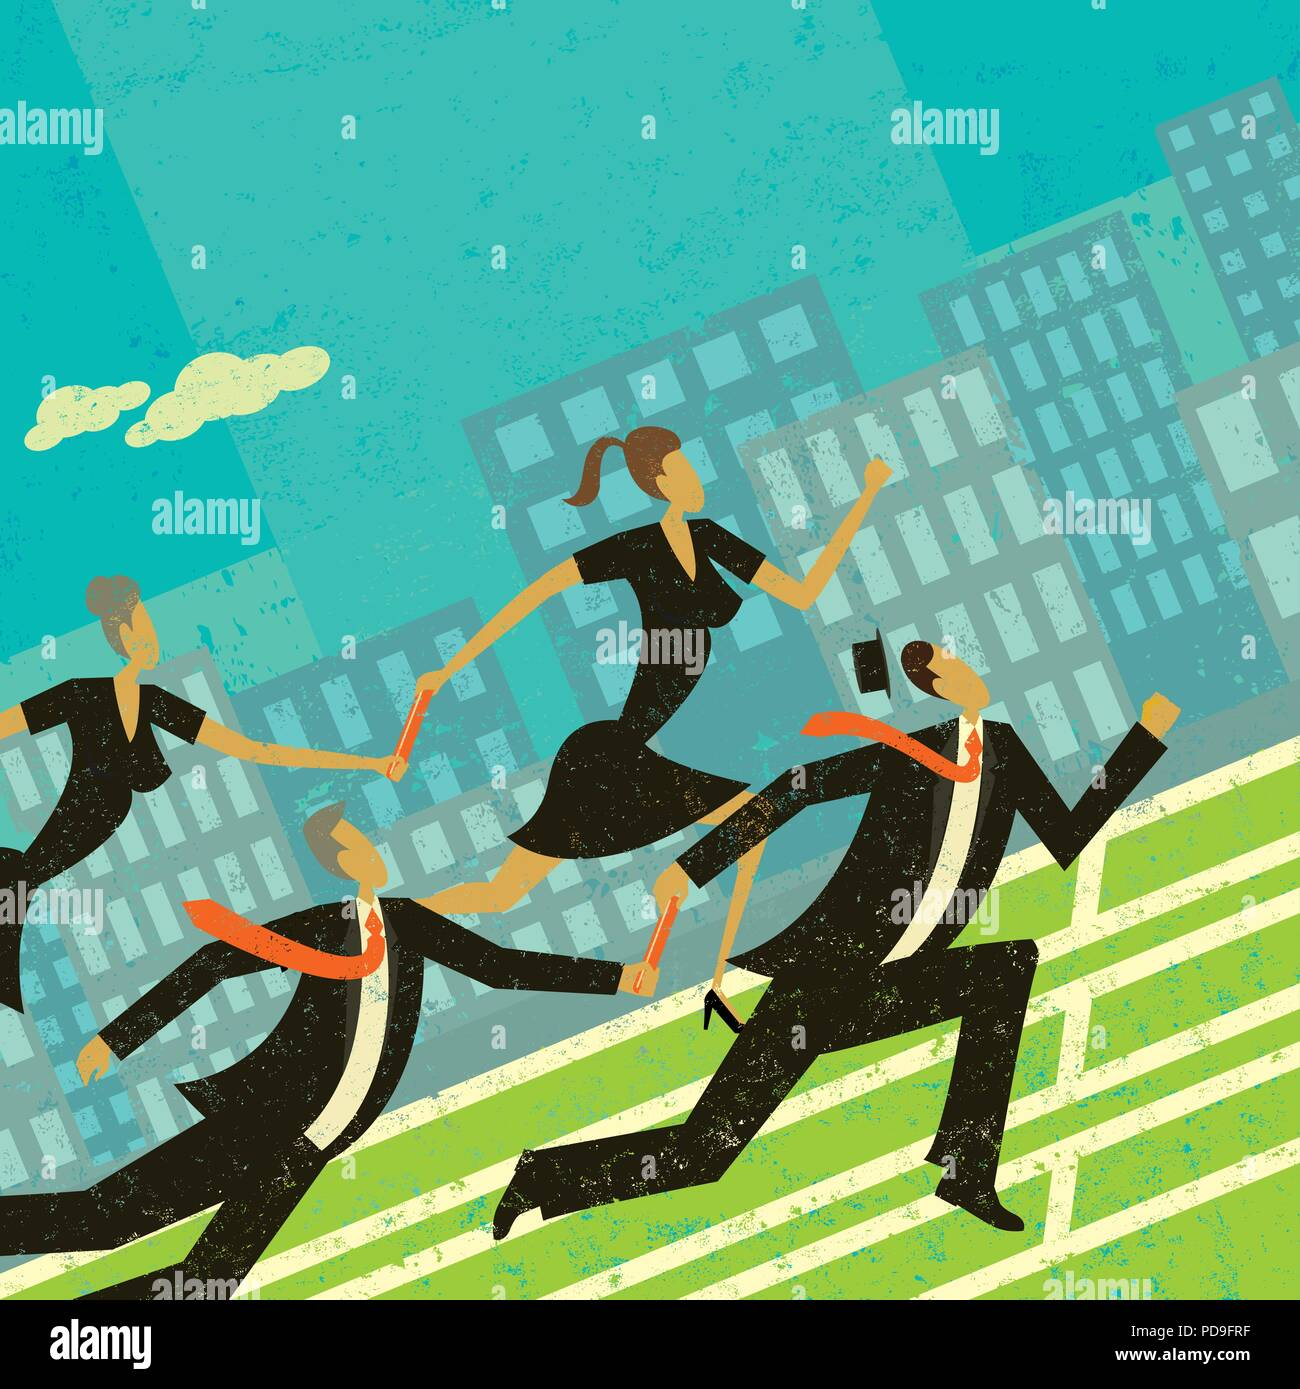 Passing the Baton. Older competing business people passing the baton, or control, to the younger business people who run faster. - Stock Vector